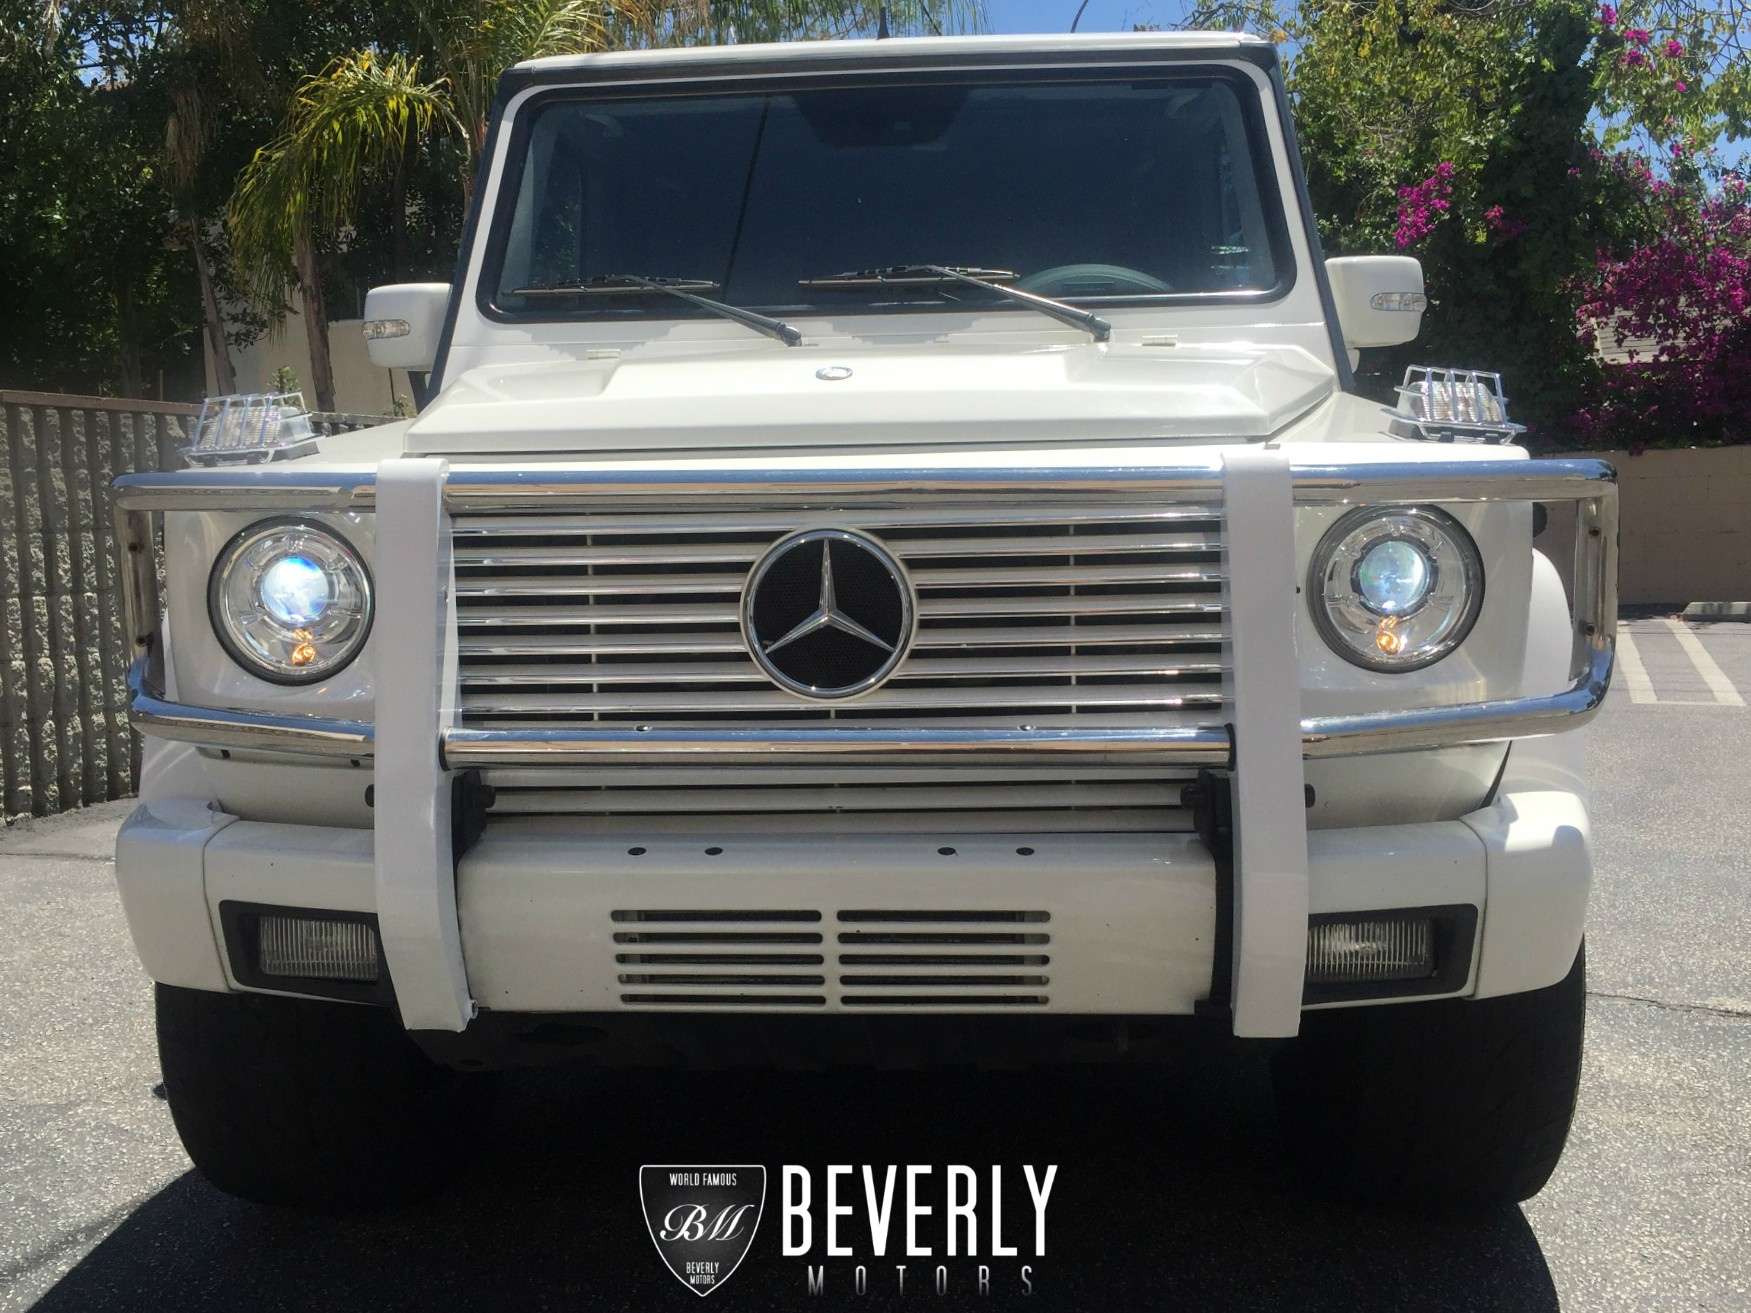 2003 mercedes benz g500 white on gray for sale beverly. Black Bedroom Furniture Sets. Home Design Ideas